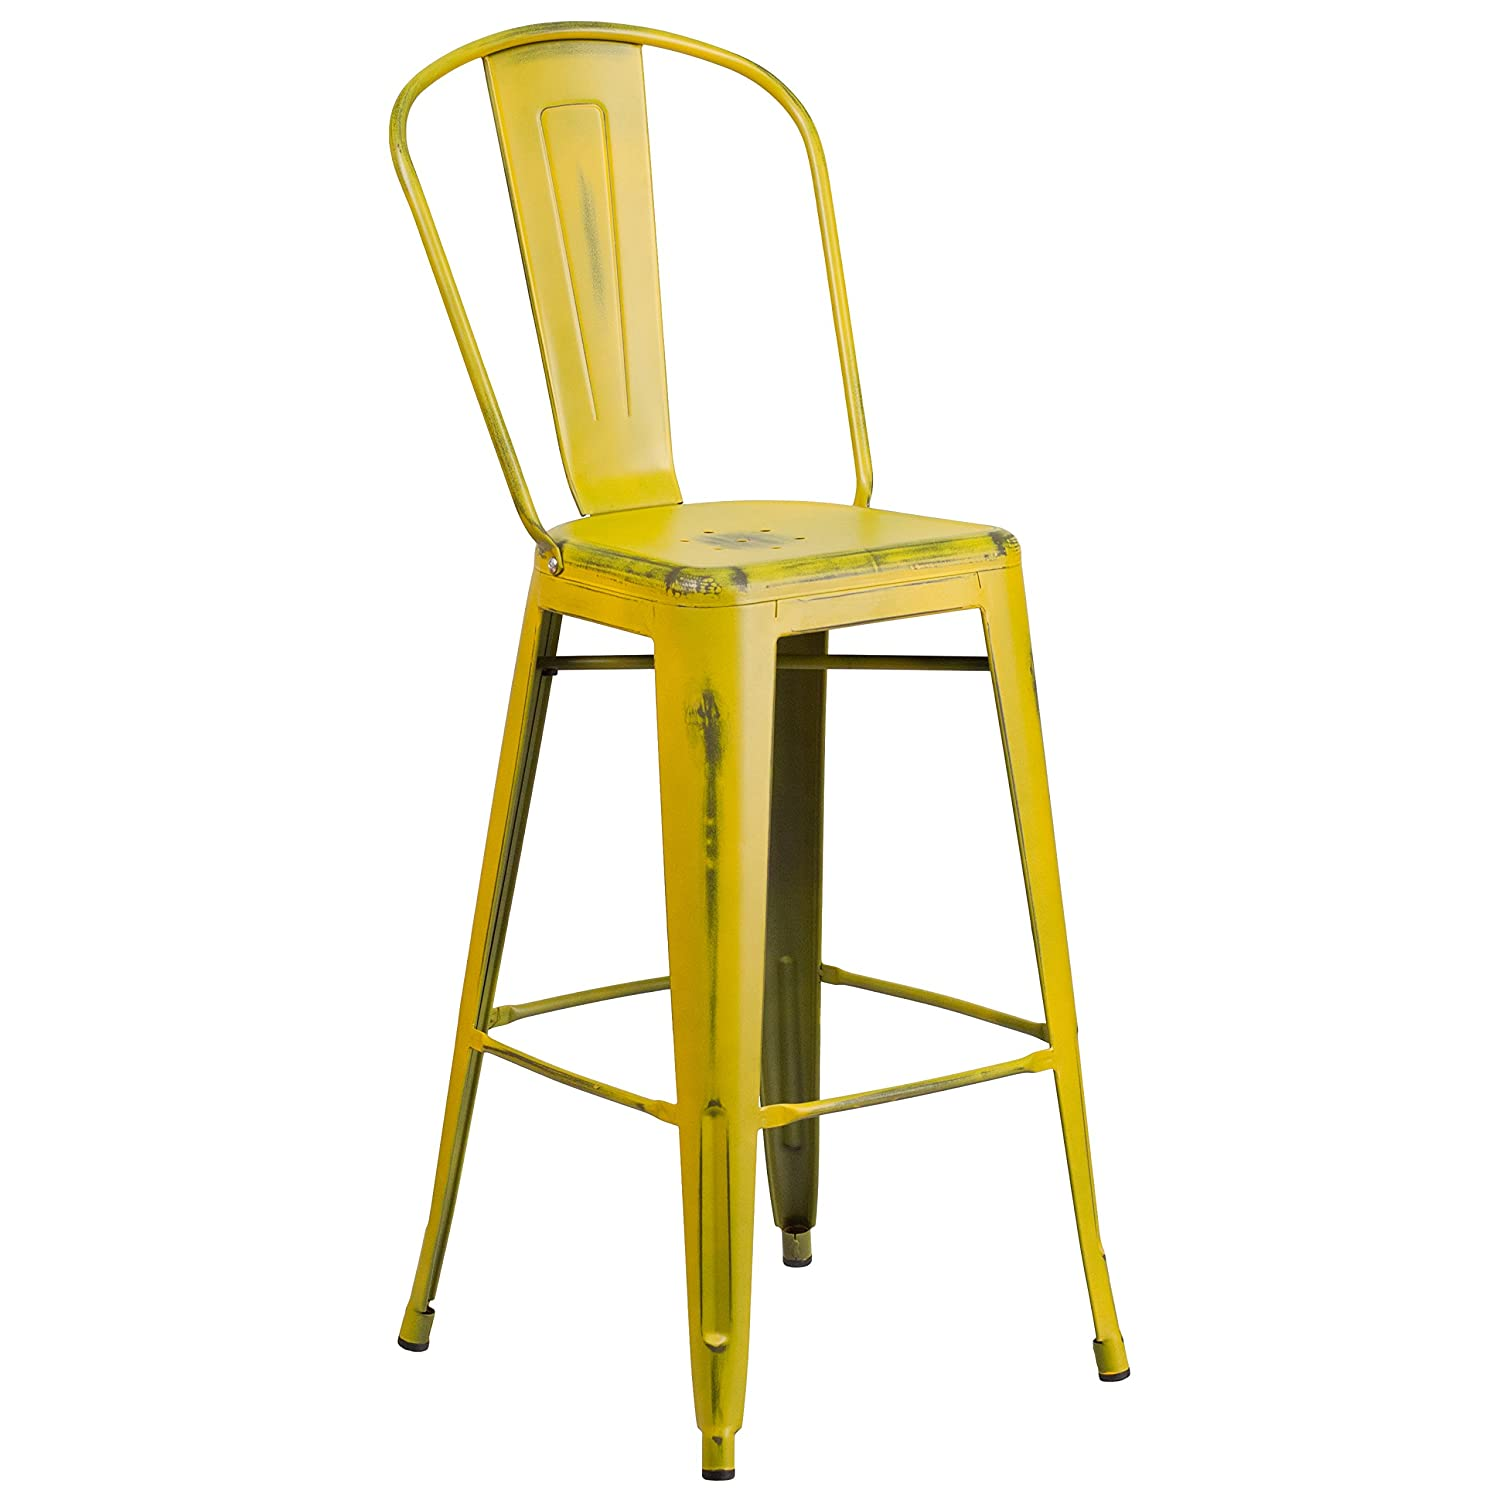 Flash Furniture 30 High Distressed Yellow Metal Indoor-Outdoor Barstool with Back